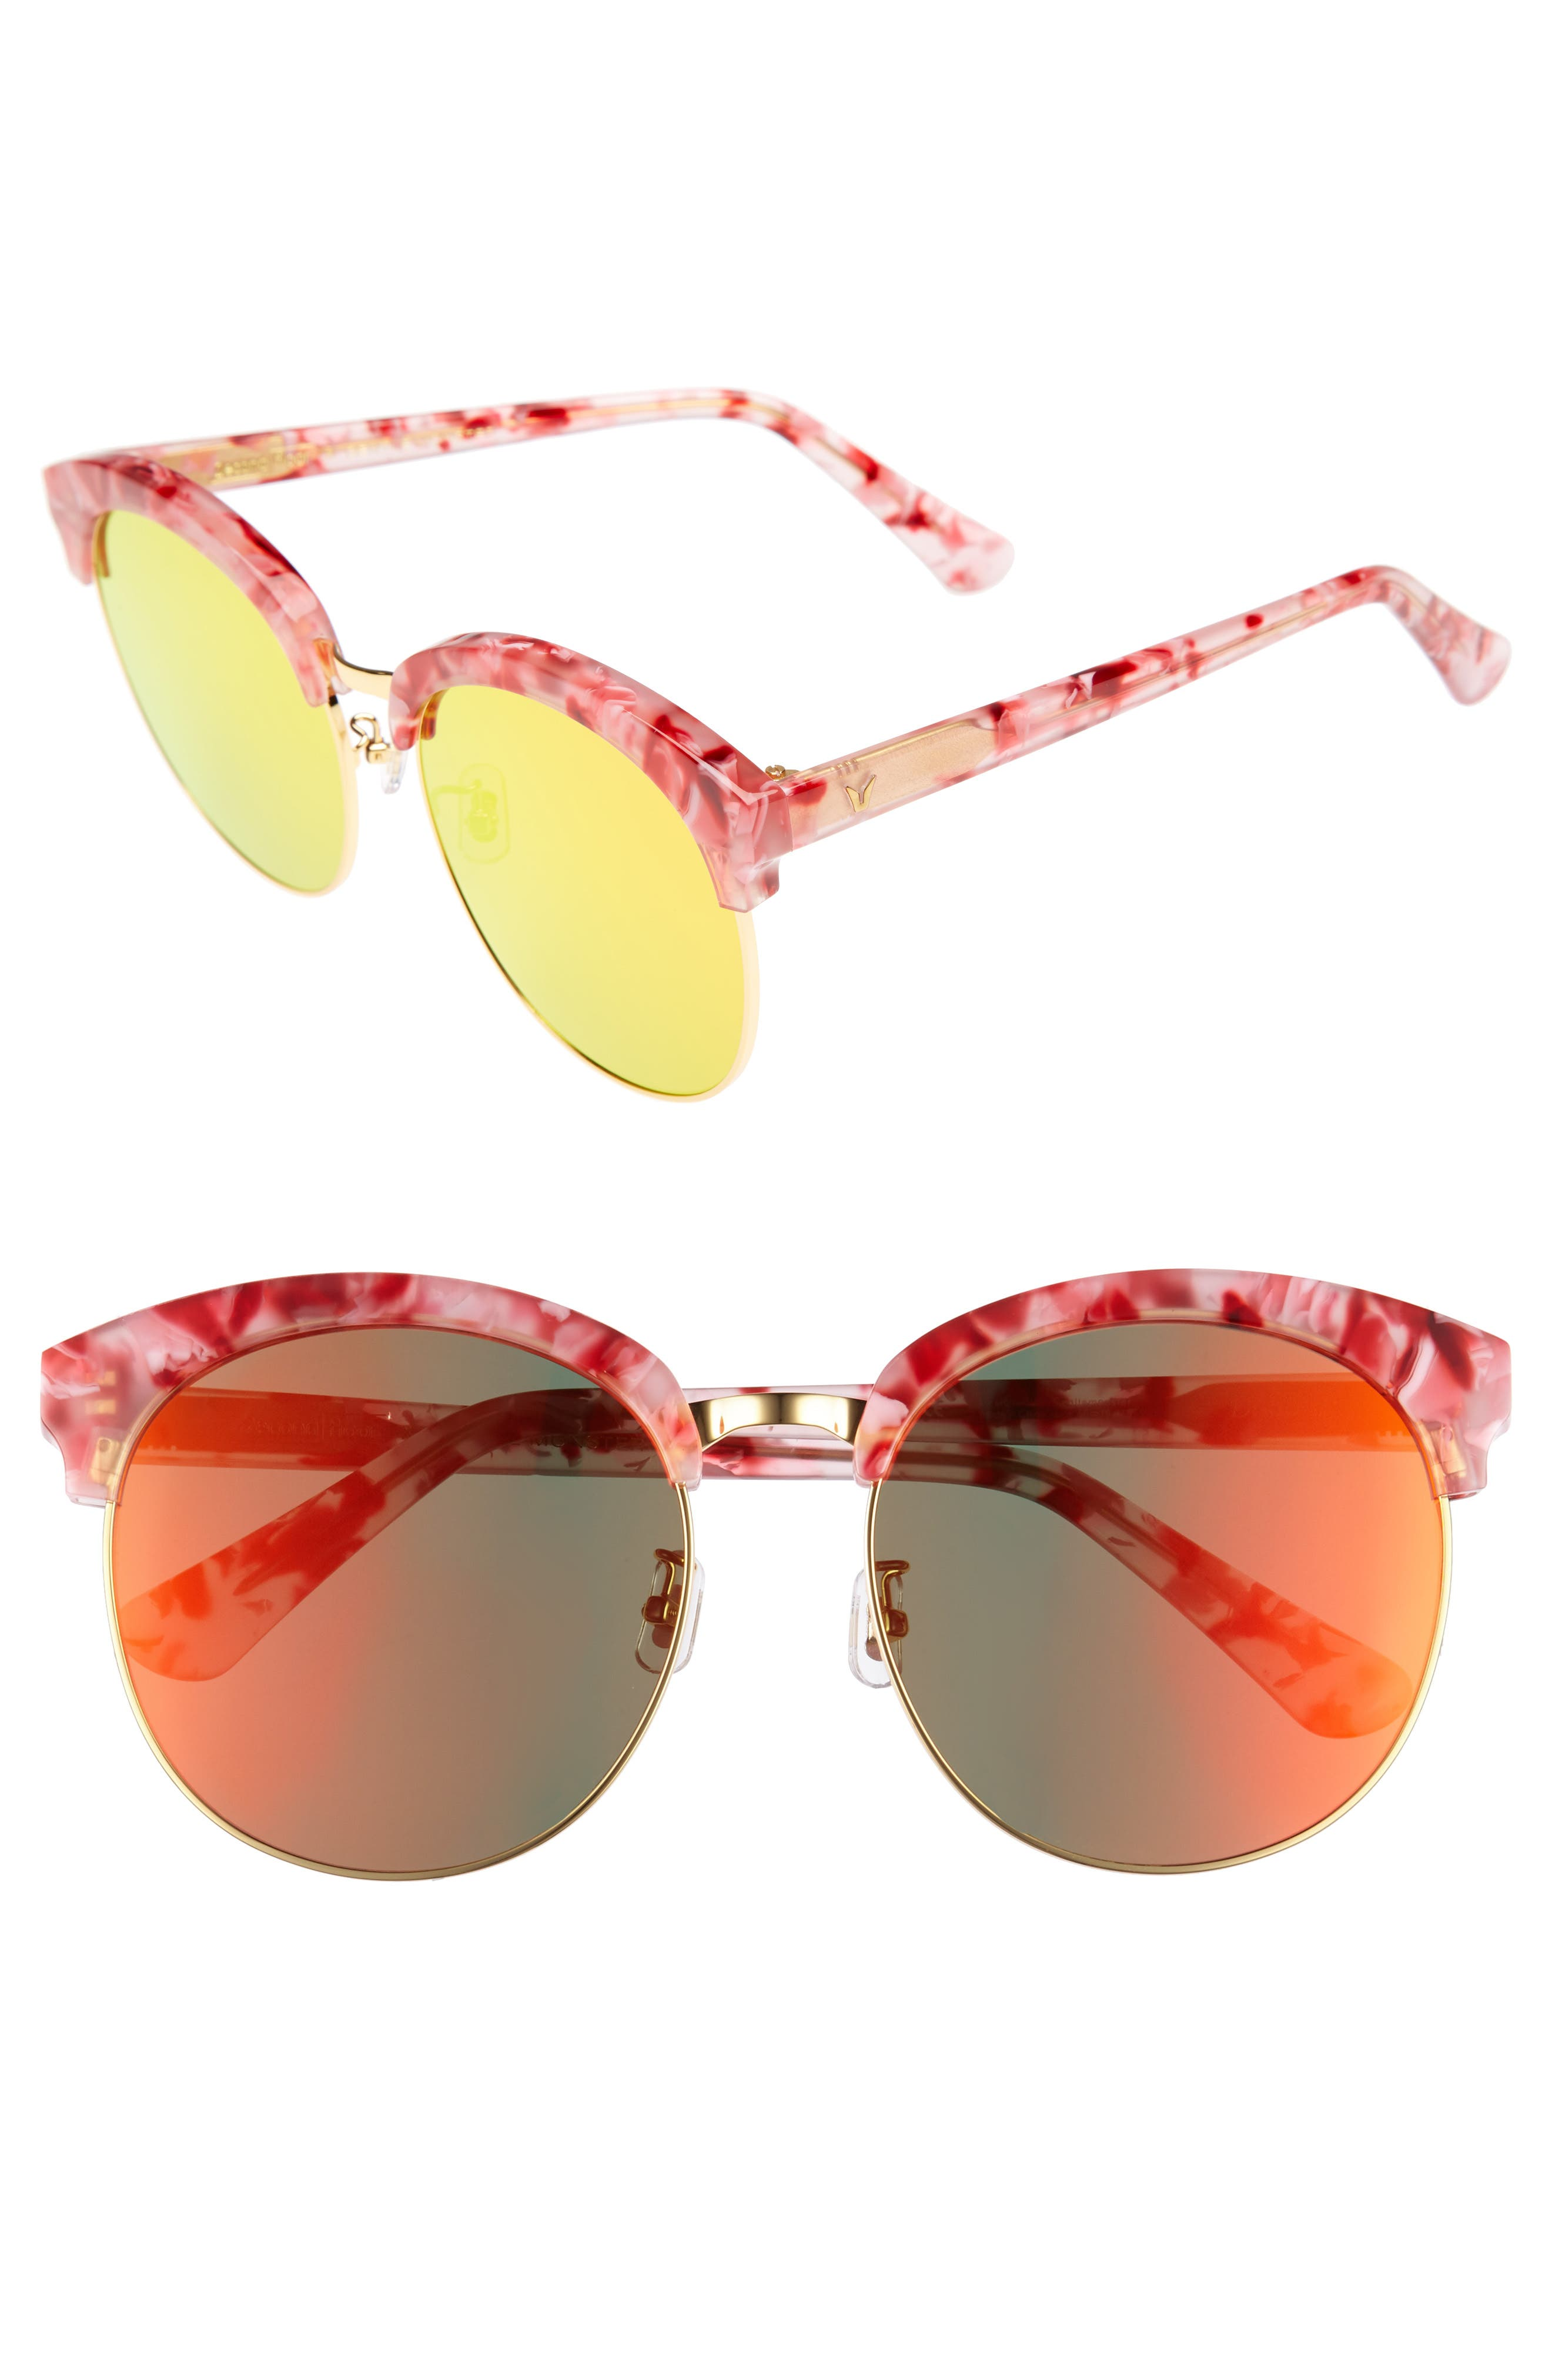 Alternate Image 1 Selected - Gentle Monster Deborah 60mm Retro Sunglasses